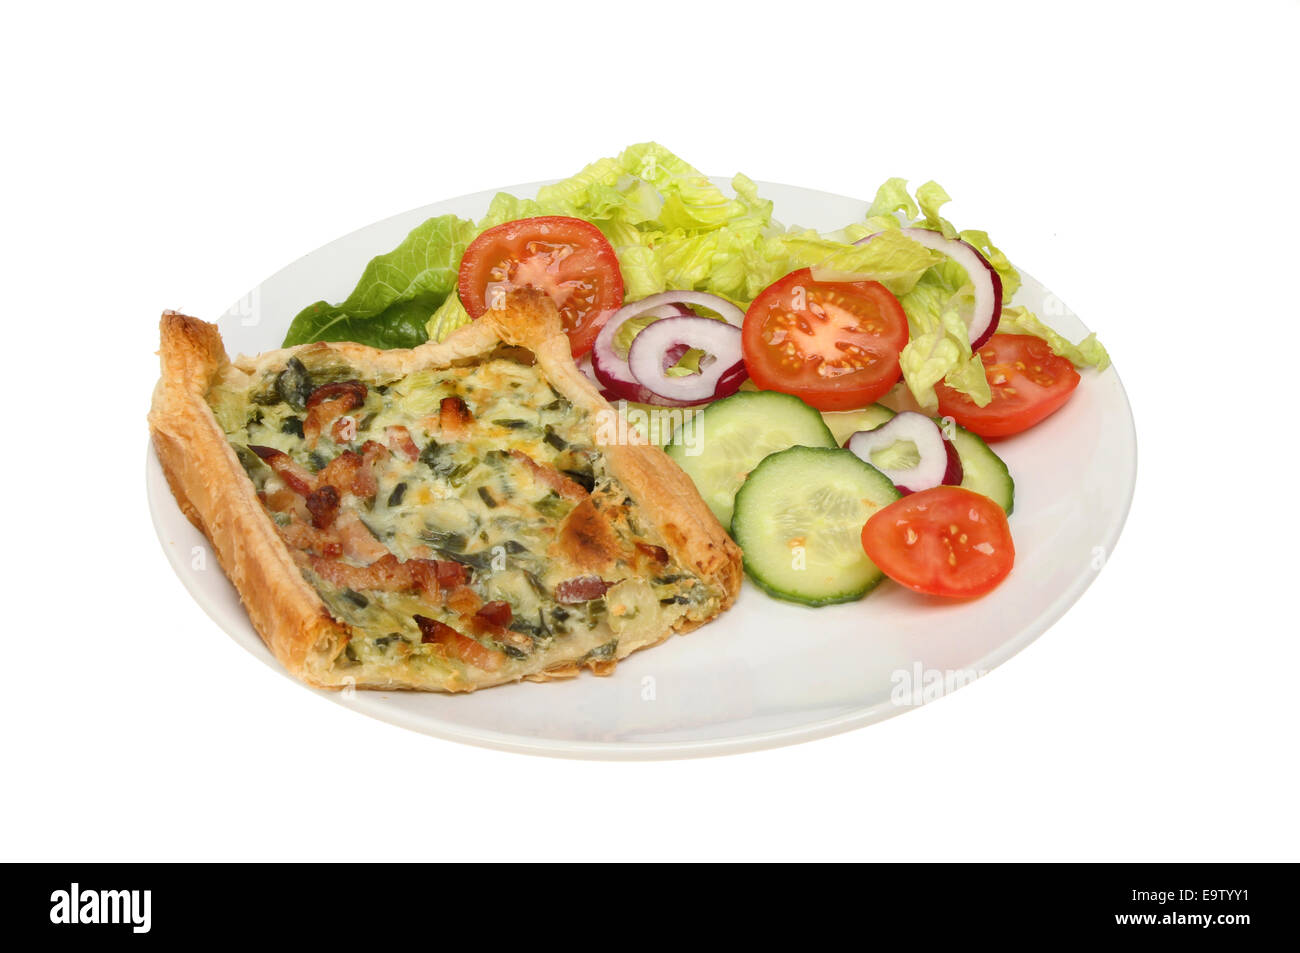 Broccoli and bacon savory tart with salad on a plate isolated against white - Stock Image